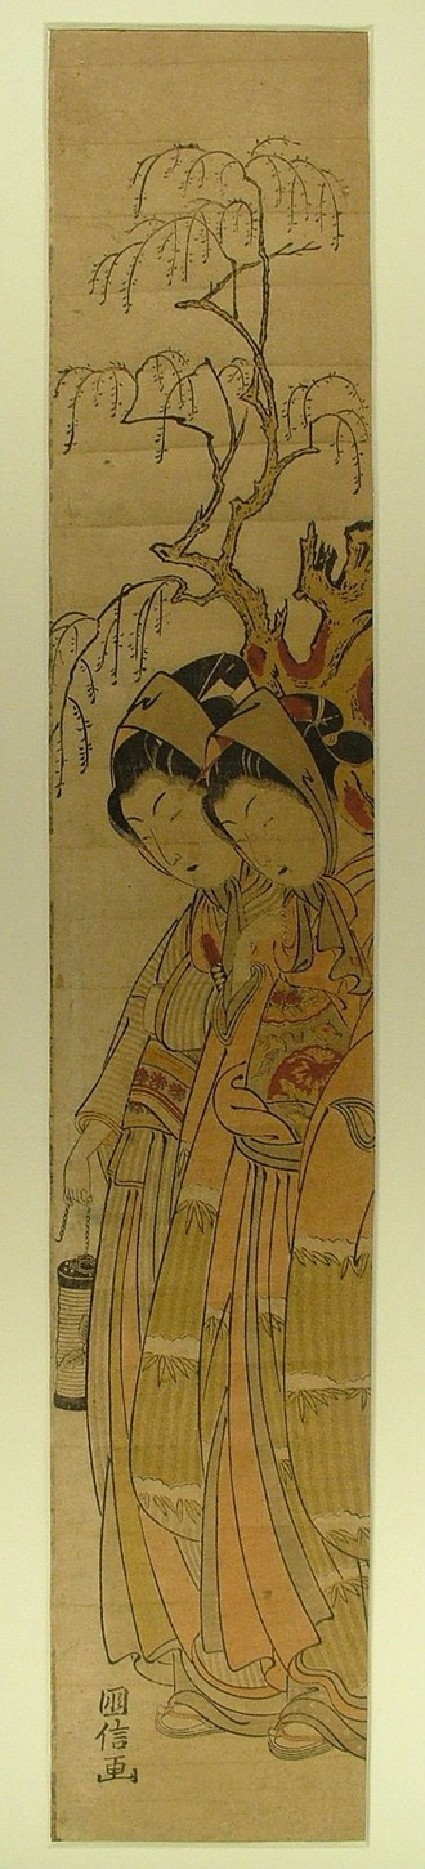 Couple beneath a willow tree